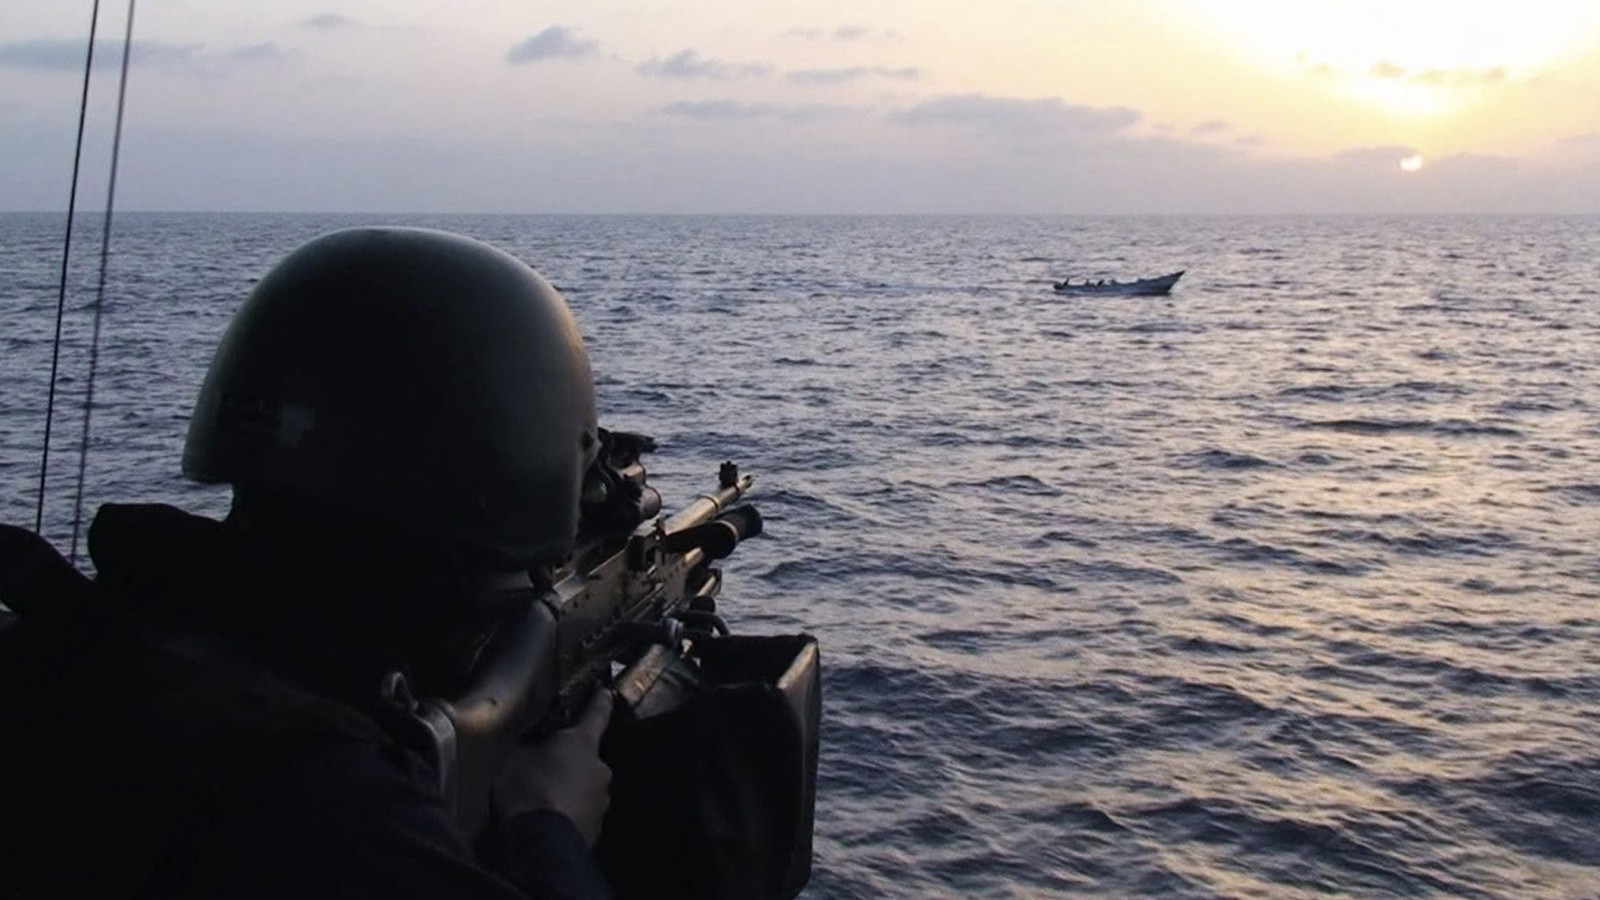 A soldier aboard the Swedish corvette HMS Malmo aims his machinegun at a boat carrying suspected pirates in the Gulf of Aden May 26 2009. The Swedish warship, which is part of international efforts to fight piracy in the gulf, captured seven pirates after they tried to attack a cargo vessel on Tuesday, Swedish armed forces said. REUTERS/Sgt. Mats Nystrom/Combat Camera Swedish Armed Forces/Scanpix   (SOMALIA MILITARY CONFLICT IMAGES OF THE DAY) NO COMMERCIAL SALES. MANDATORY CREDIT. QUALITY FROM SOURCE. FOR EDITORIAL USE ONLY. NOT FOR SALE FOR MARKETING OR ADVERTISING CAMPAIGNS. SWEDEN OUT. NO COMMERCIAL OR EDITORIAL SALES IN SWEDEN - RTXO3O7